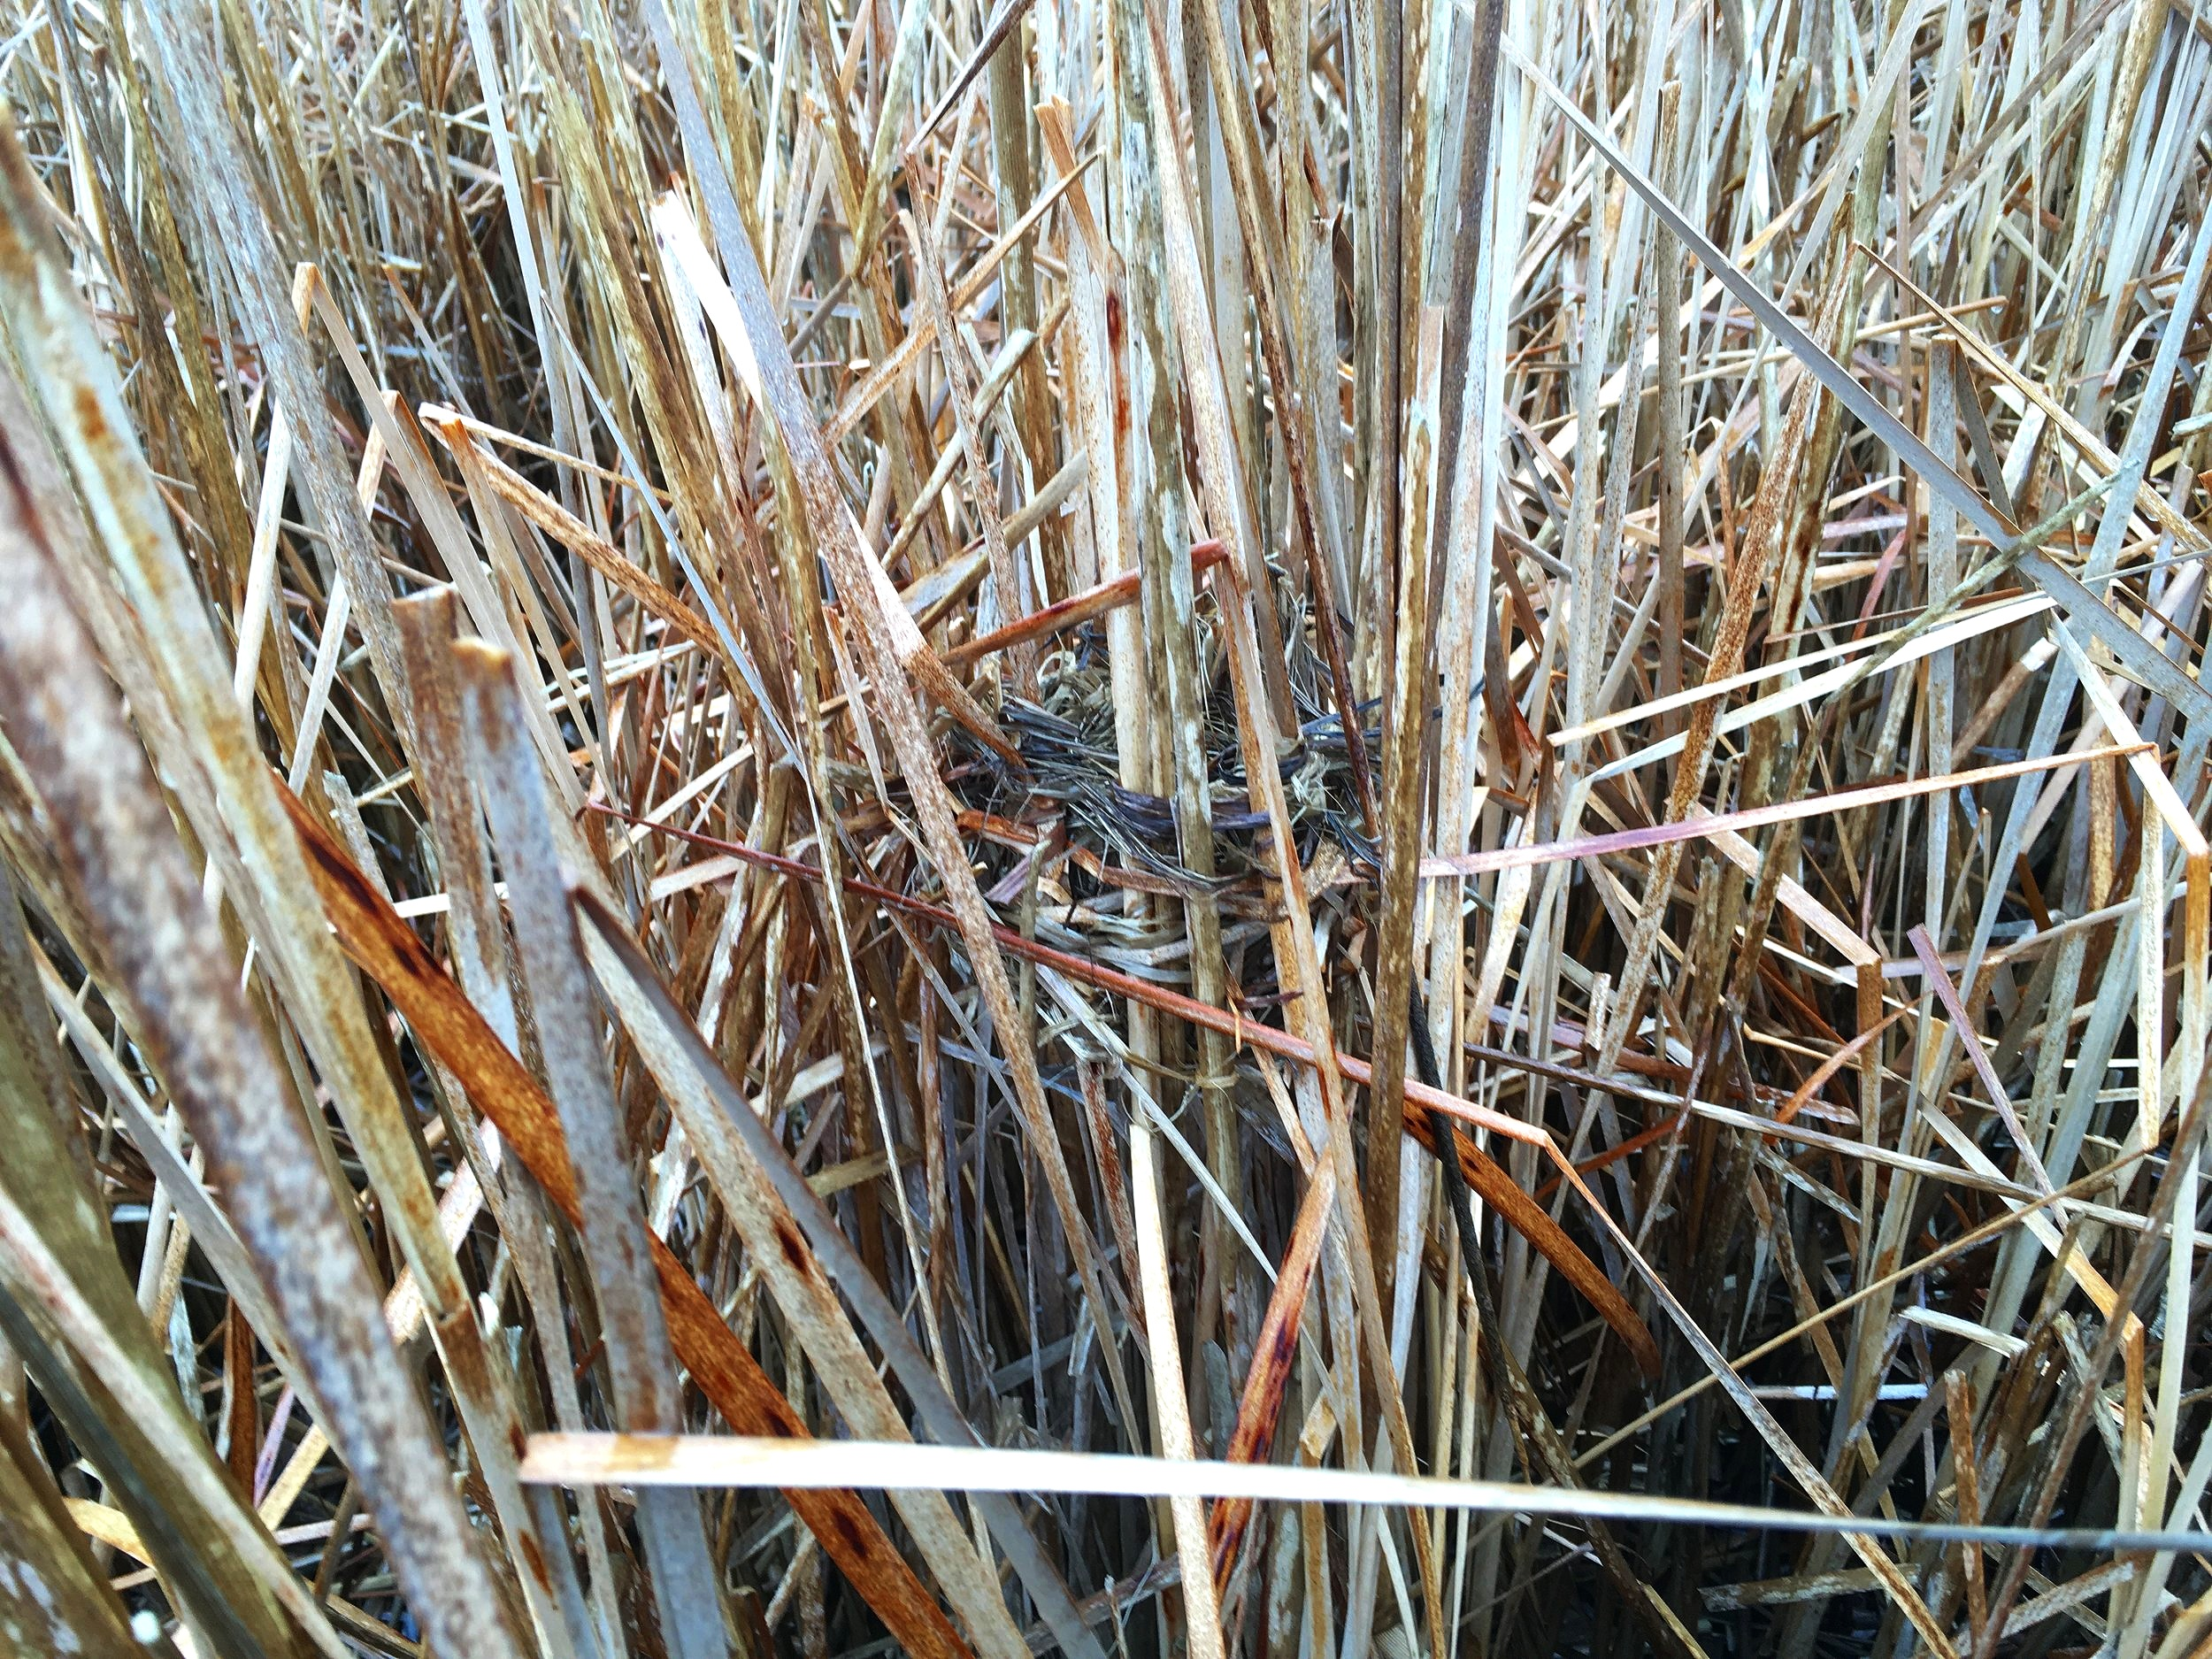 A nest rests in the cattail marsh.